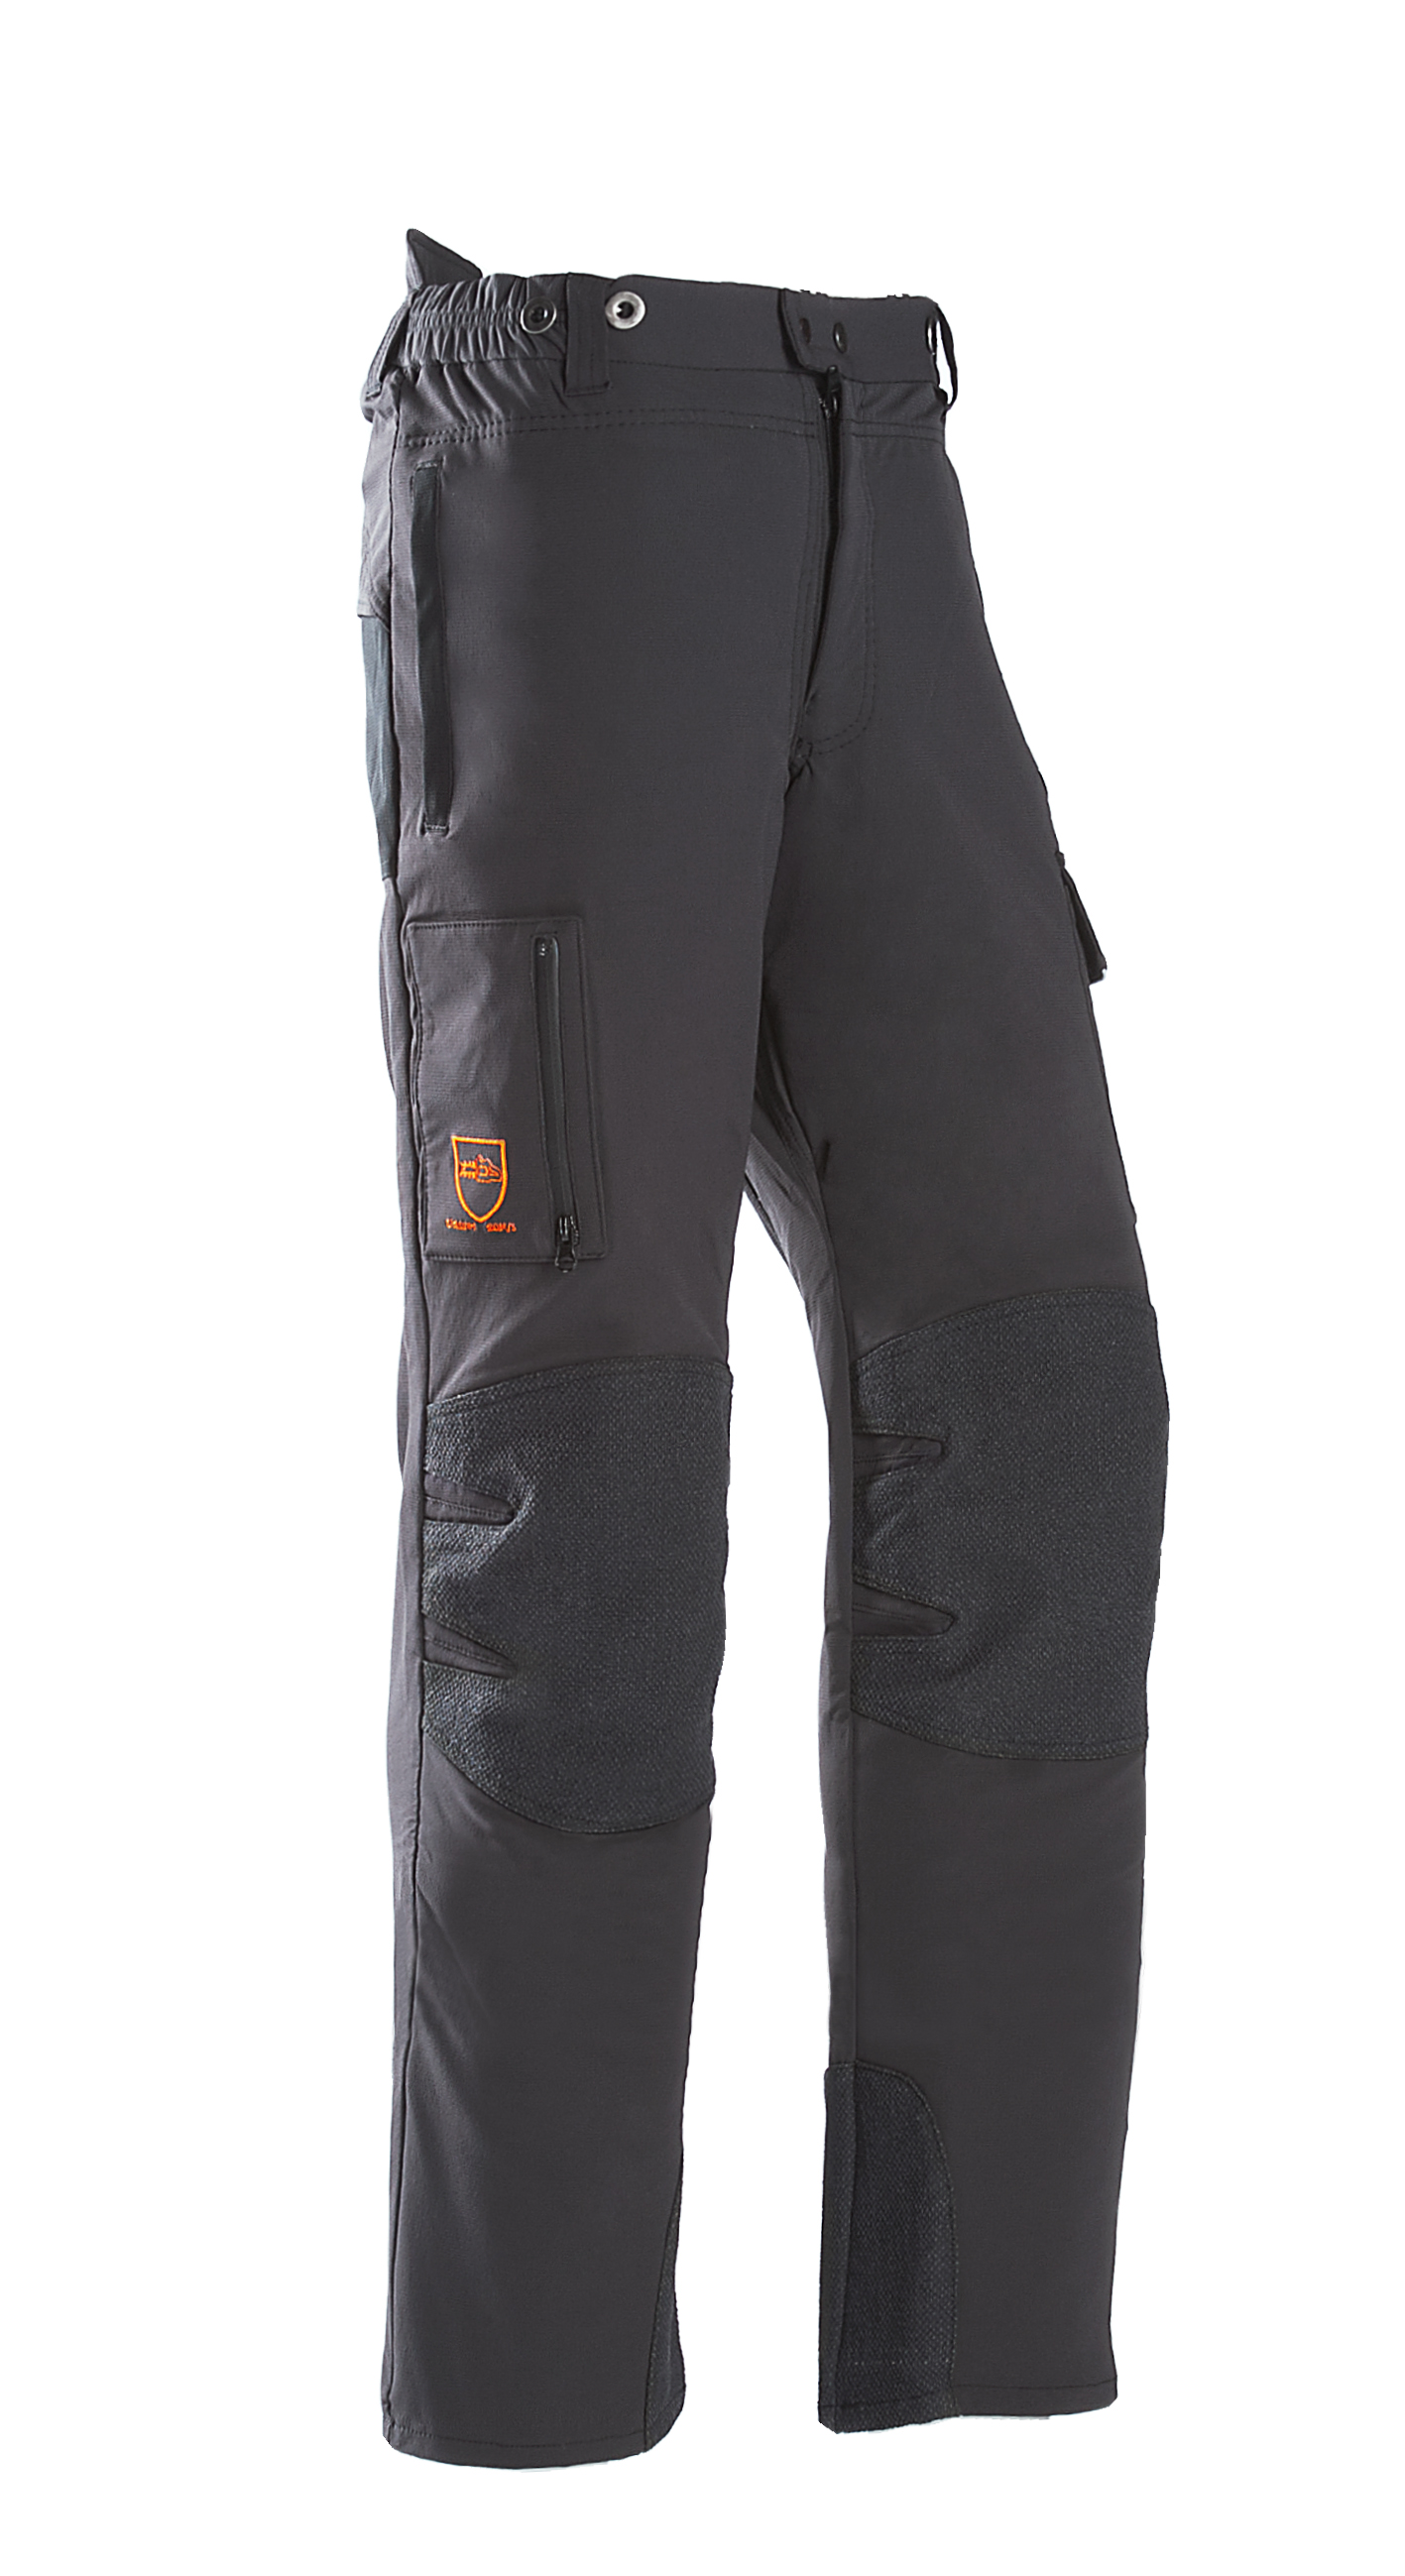 SIP PROTECTION PANTALON ANTI-COUPURE PROGRESS ARBORIST RALLONGÉ +7CM